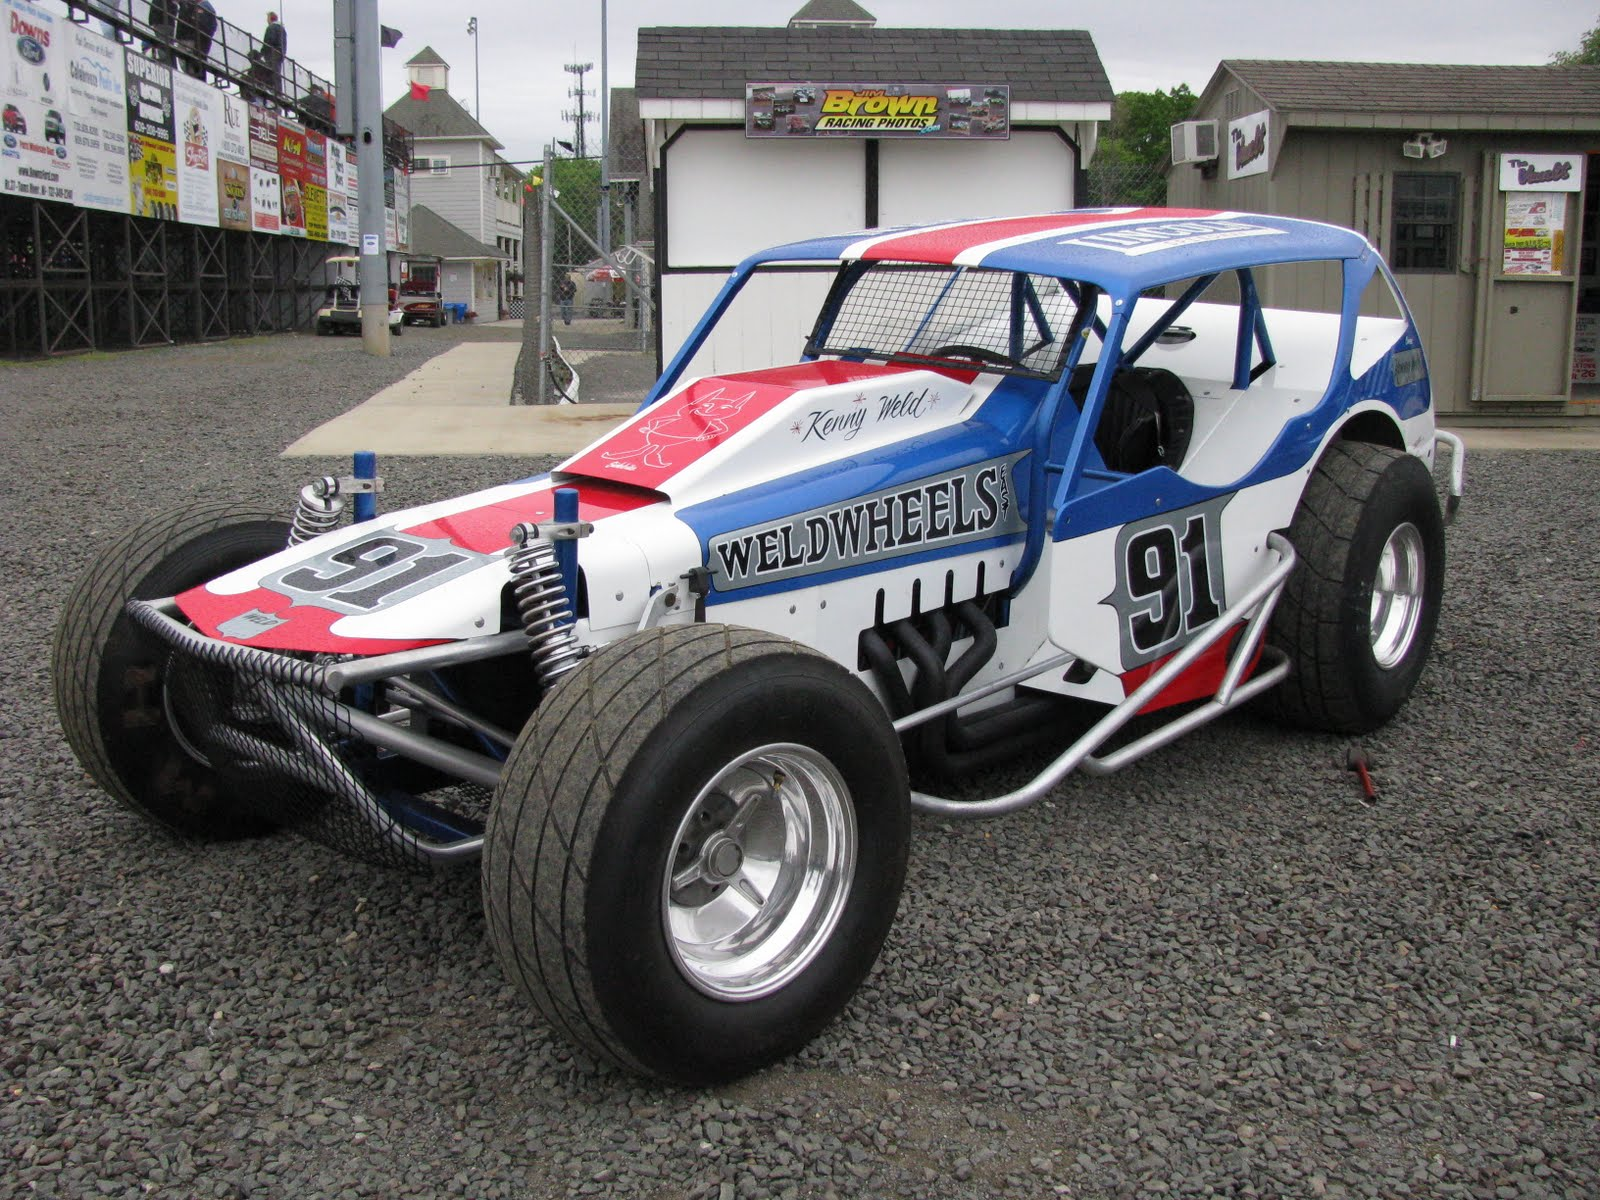 Vintage cars, including Kenny Weld Modified, at New Egypt Speedway ...